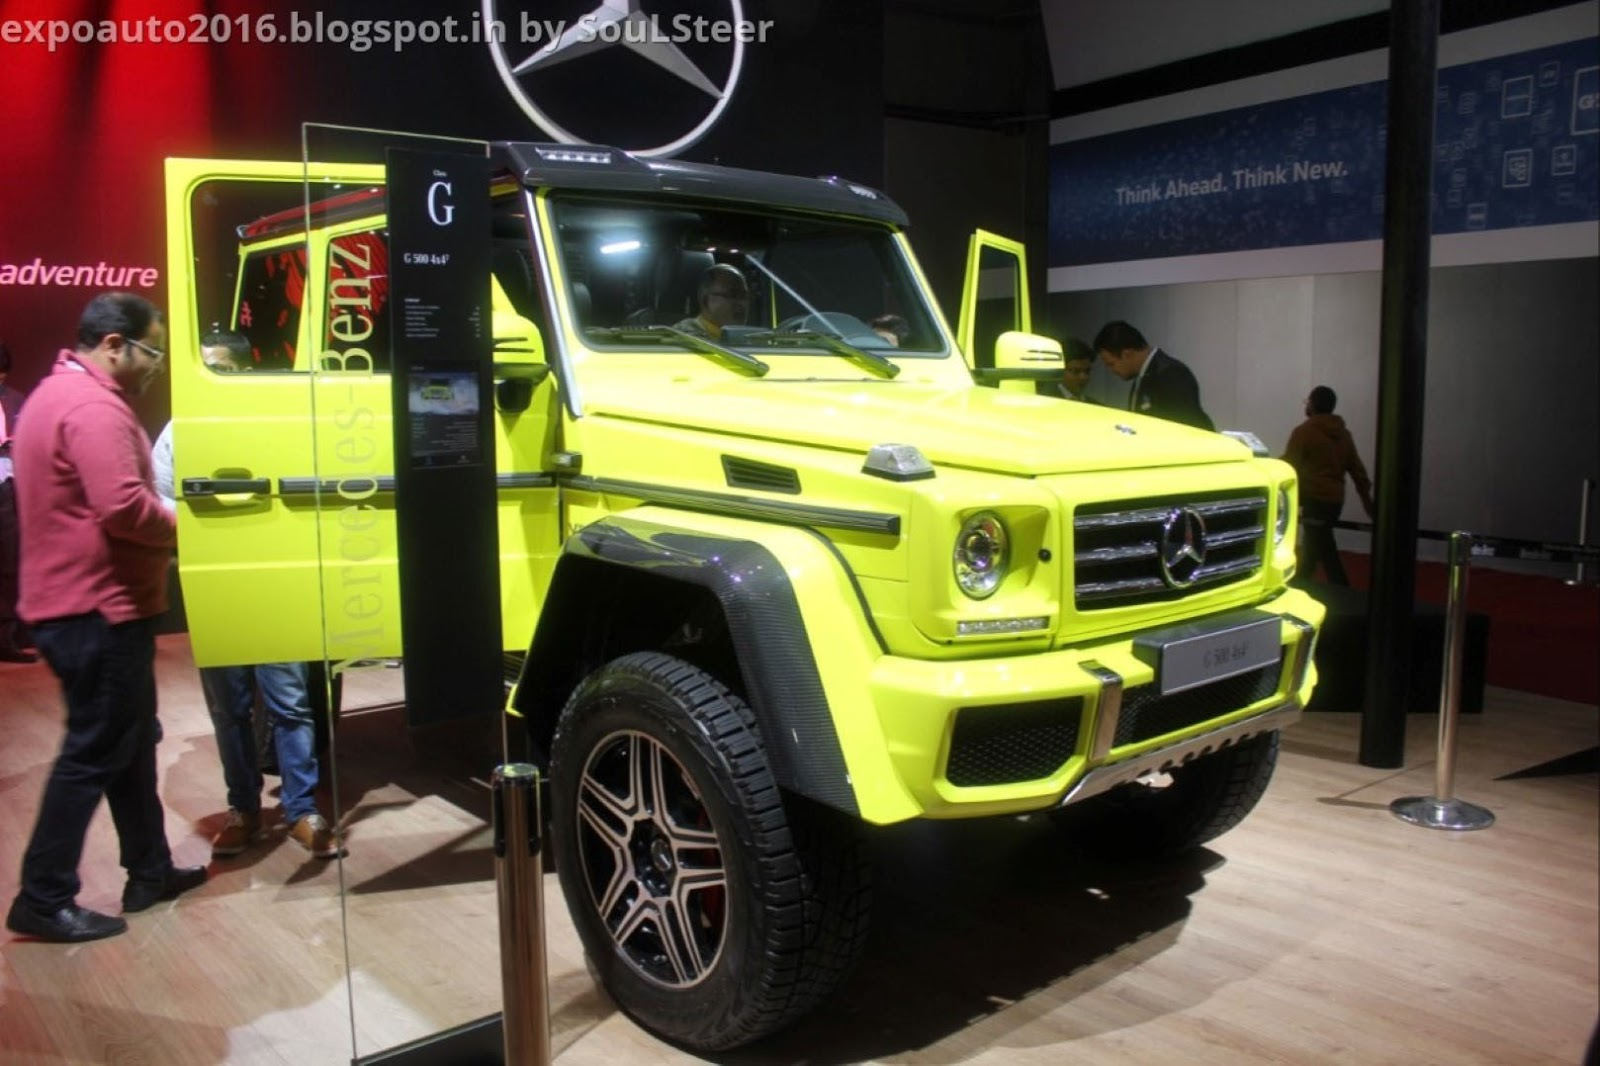 Auto Expo By Soulsteer Hp Mercedes Benz G Is